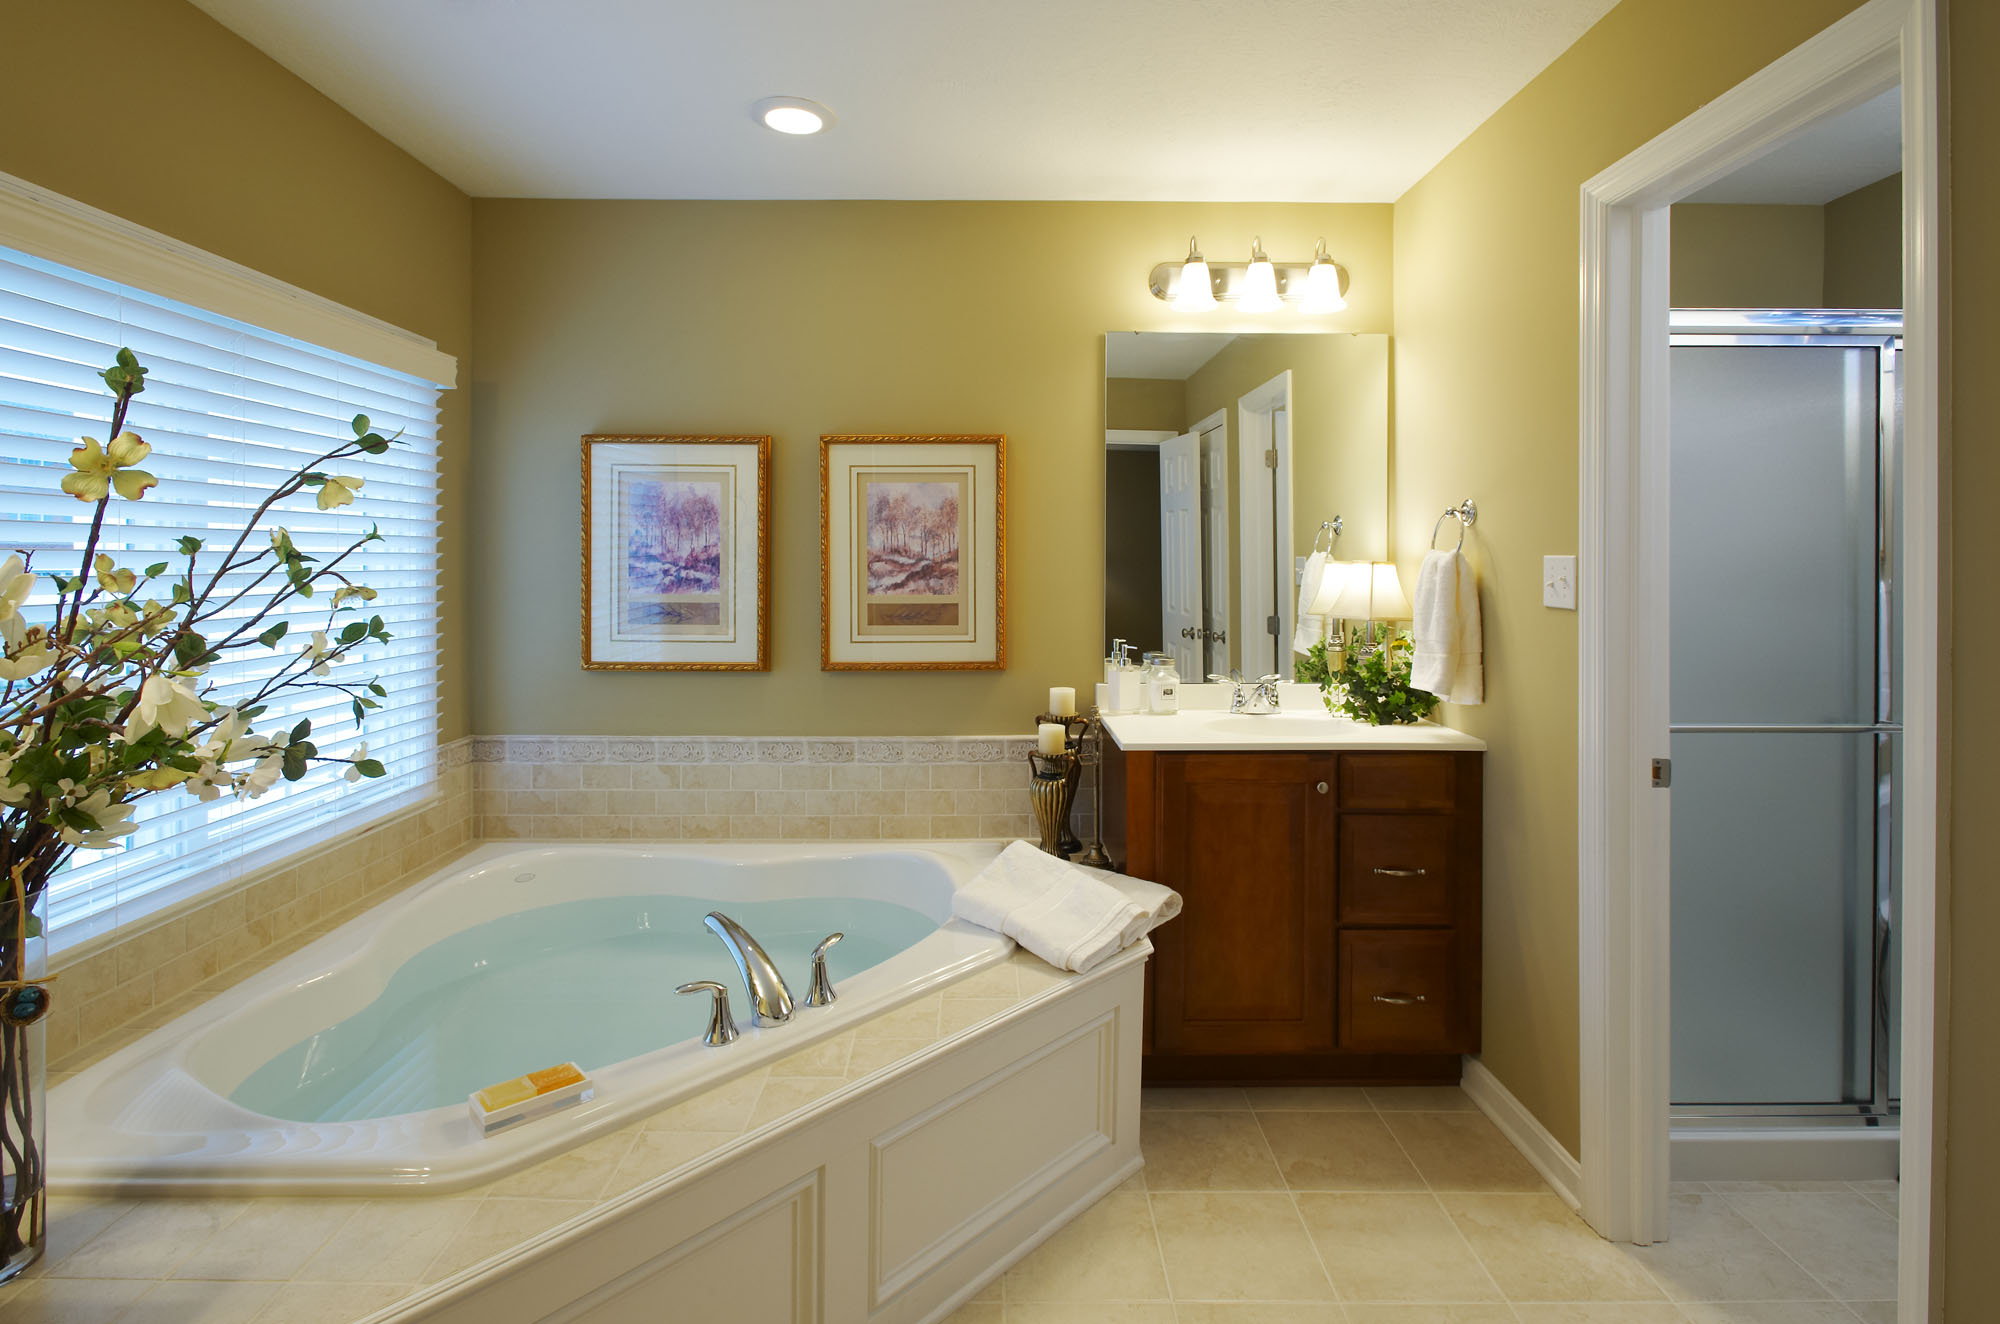 Model home bathroom pictures 17 varities of looking your for Bathroom images for home